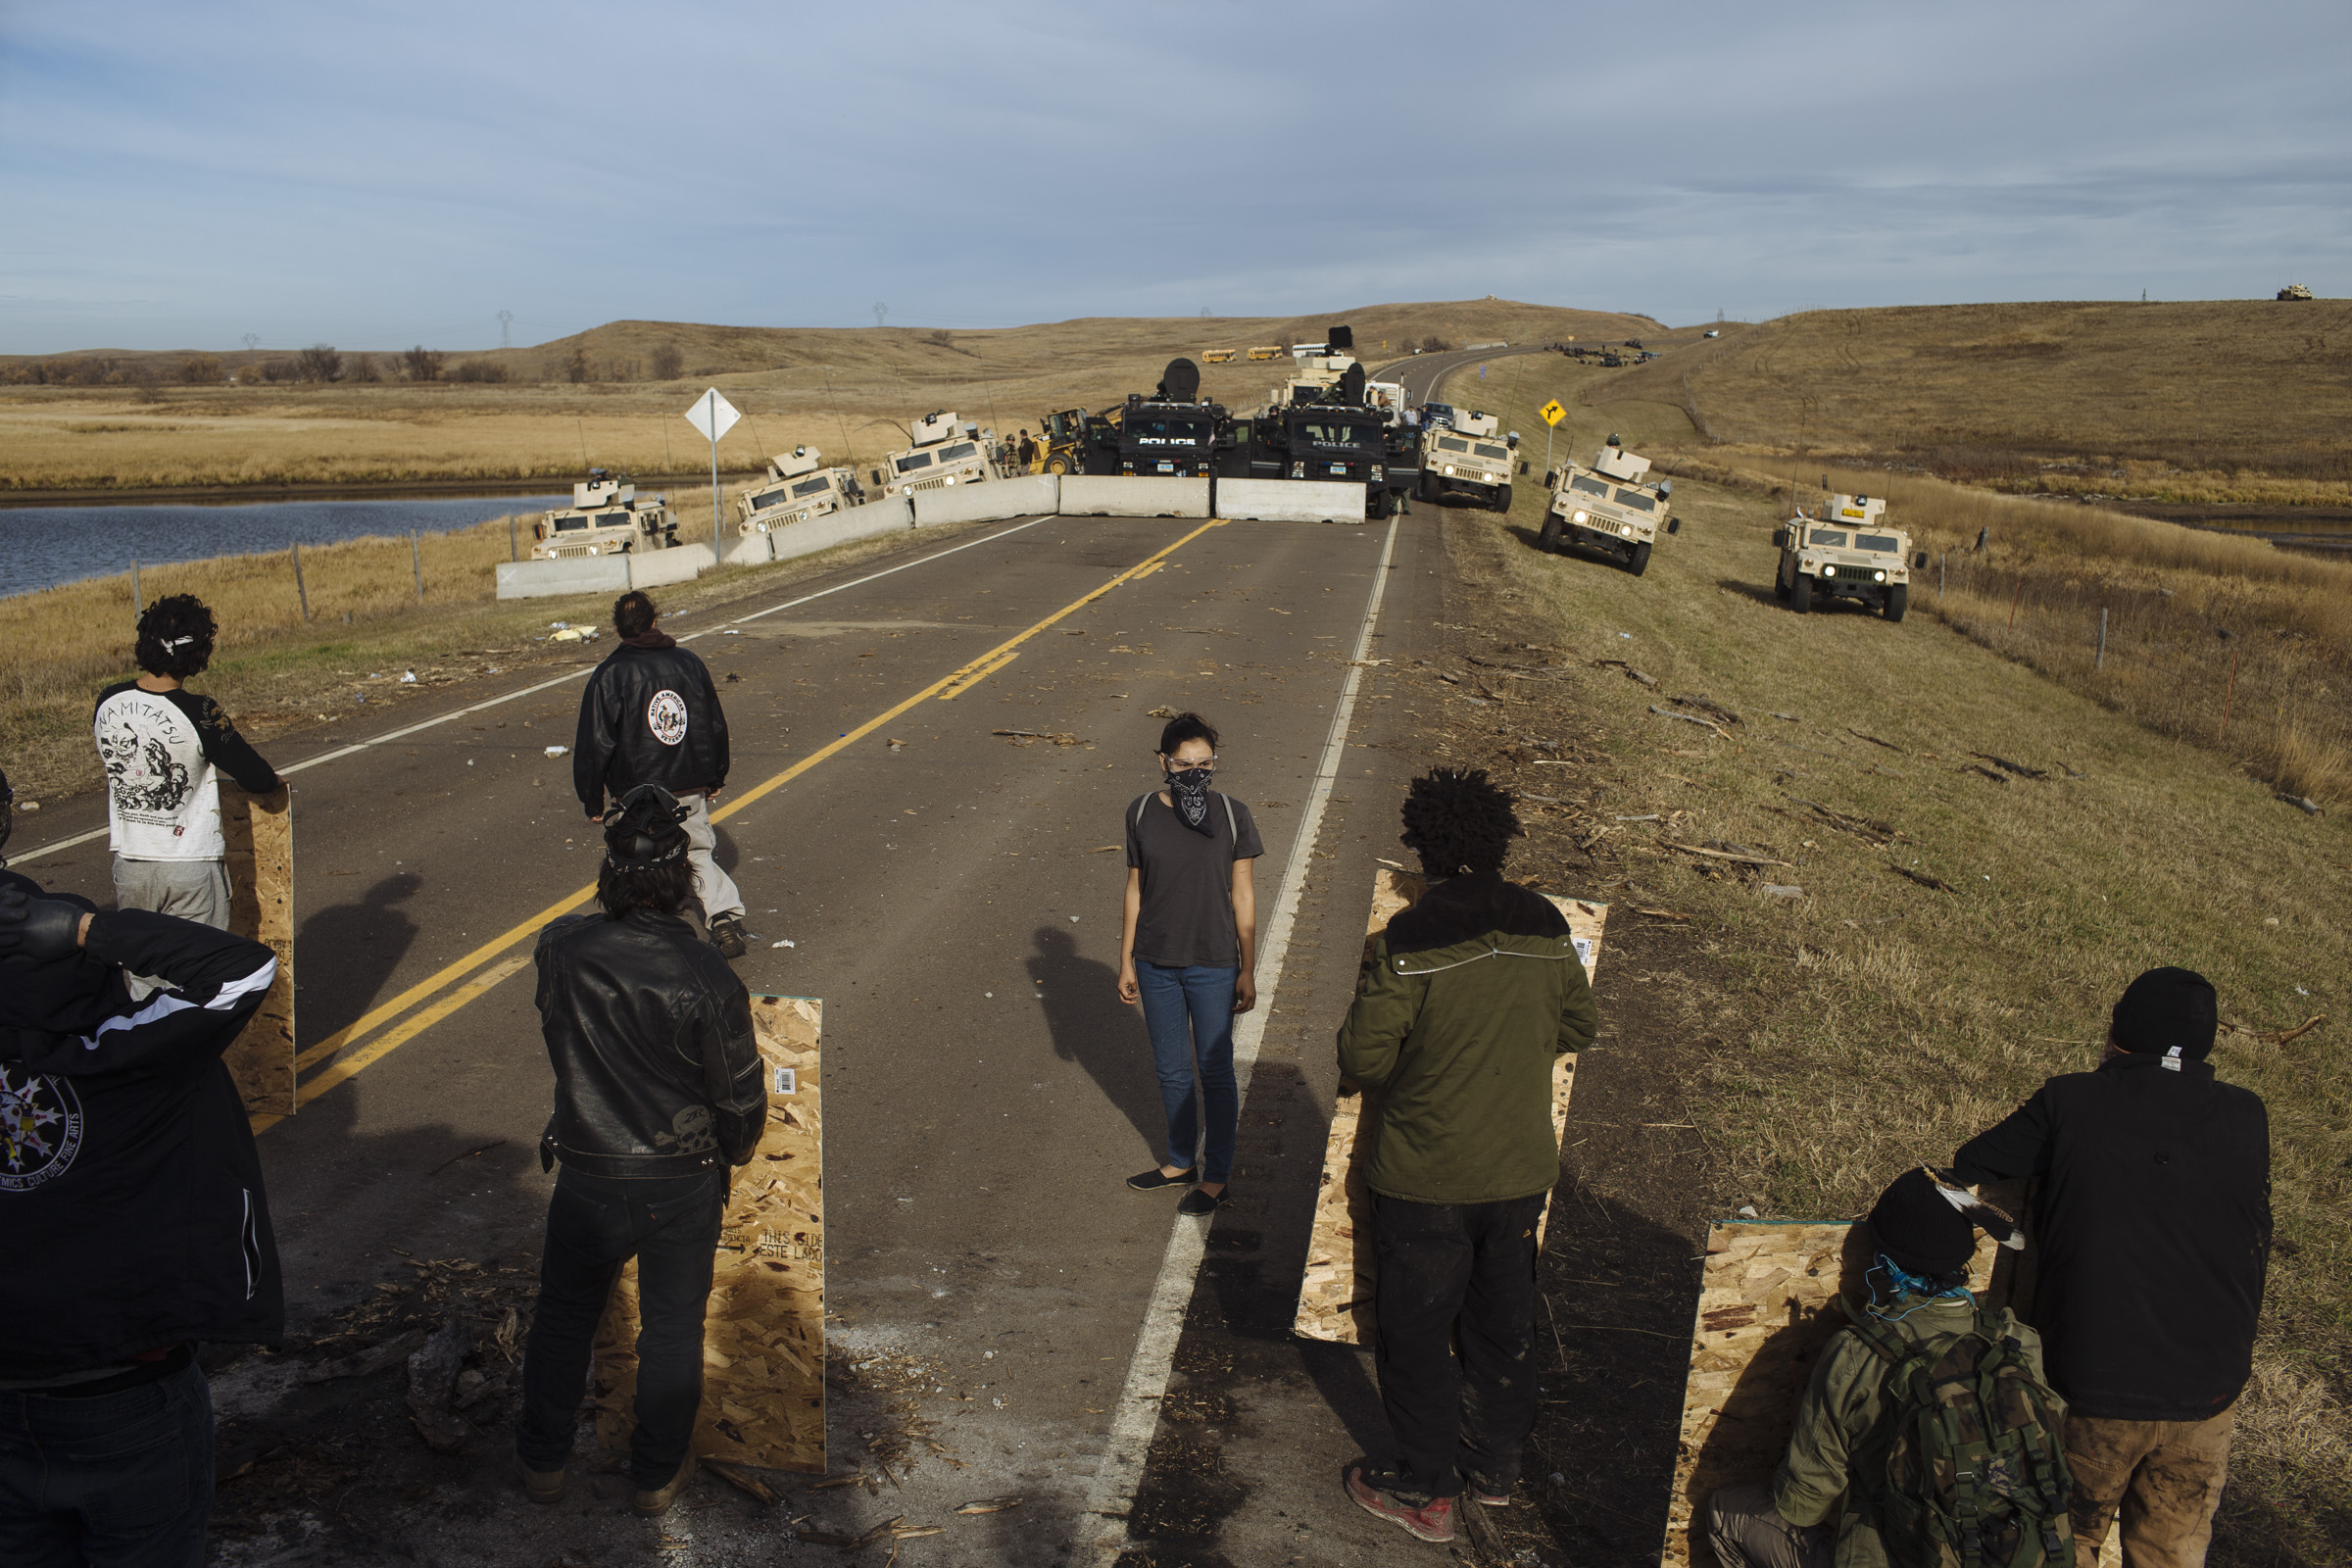 A small group of protesters face off against police as a road block is constructed by the Backwater Bridge on Highway 1806, just a day after police cleared the northernmost protest encampment on Thursday, Oct. 27, 2016. The roadblock on Backwater Bridge has become a key point of conflict as protestors state it blocks access for emergency responders. Police argue that the bridge is unsafe and that it's essential to separate protestors from pipeline security and construction workers. (Photo by Angus Mordant/Groundtruth)